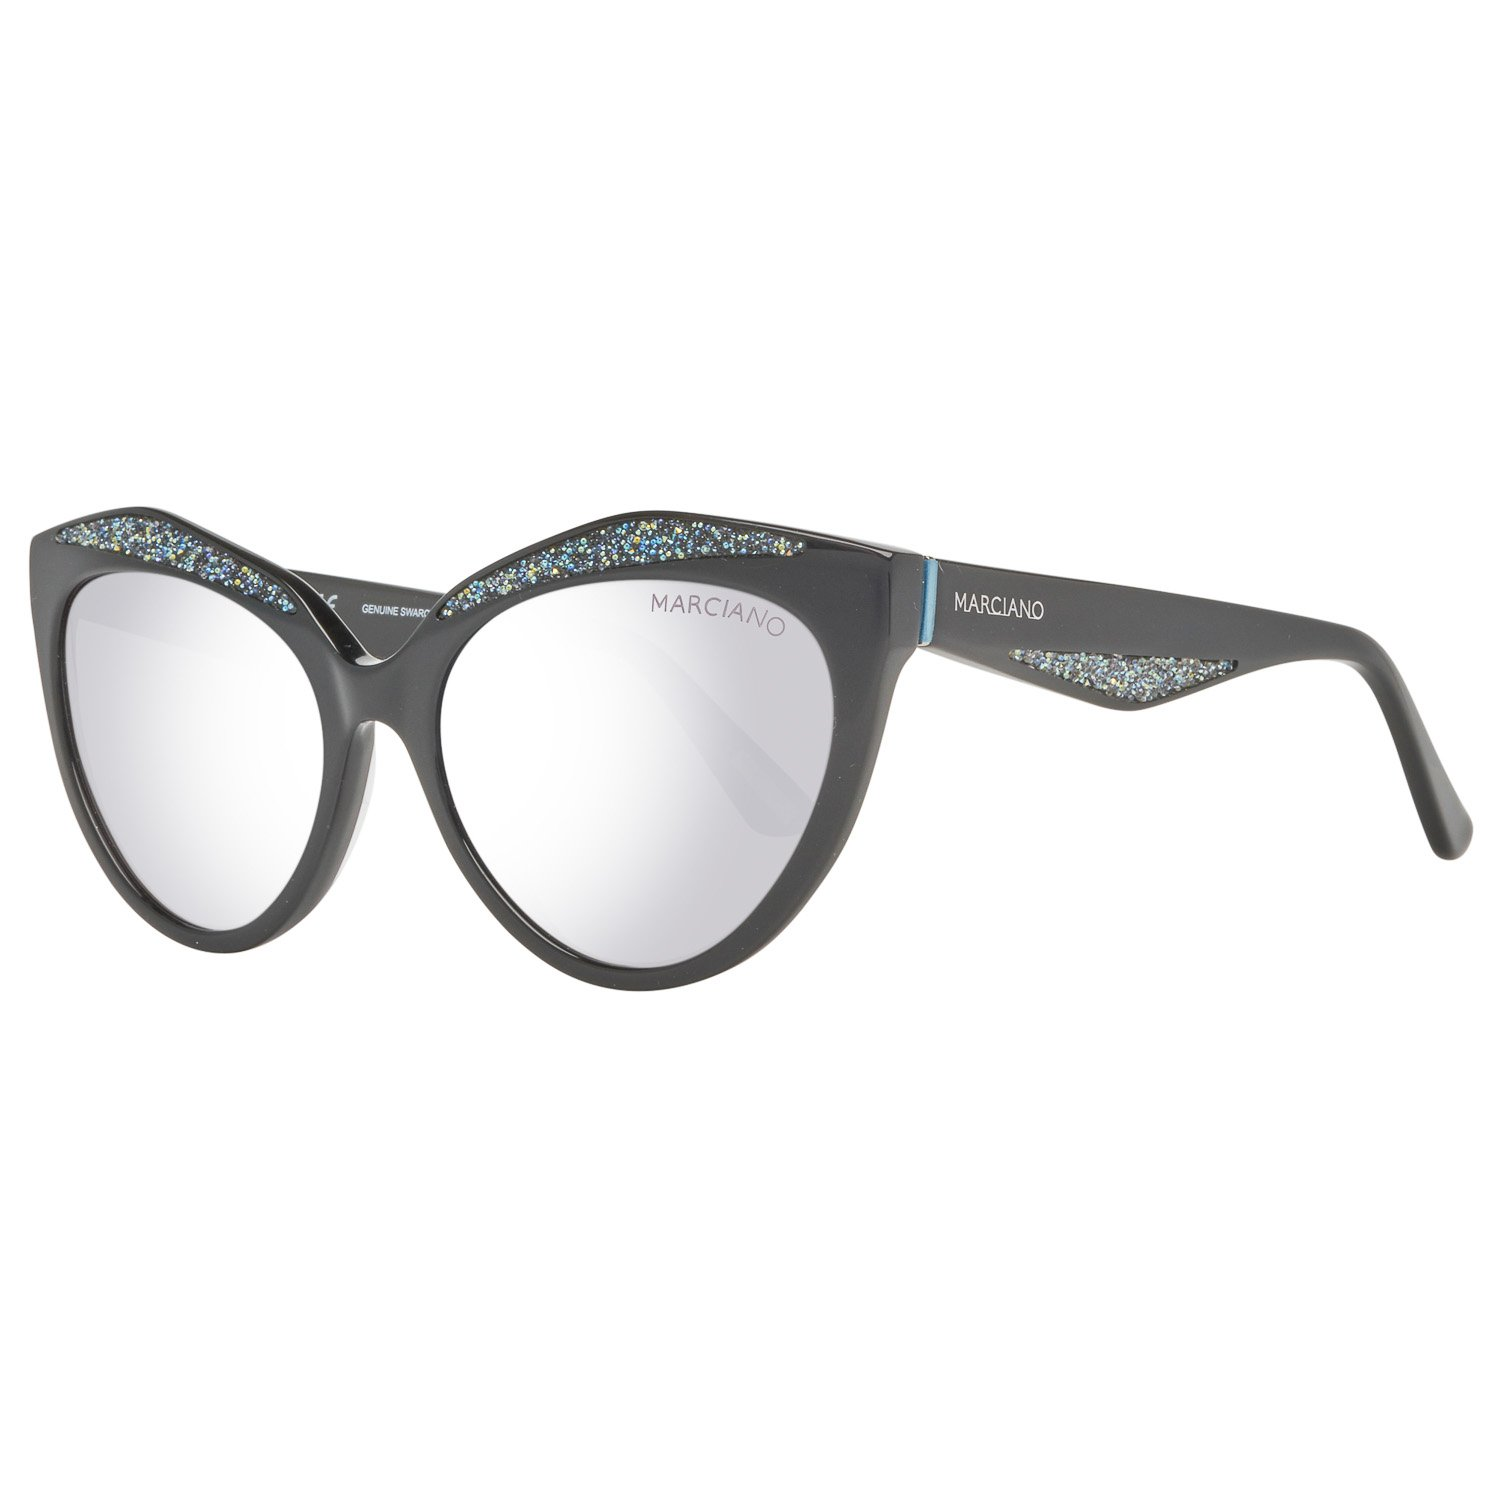 Guess By Marciano Women's Sunglasses Black GM0776 5601C